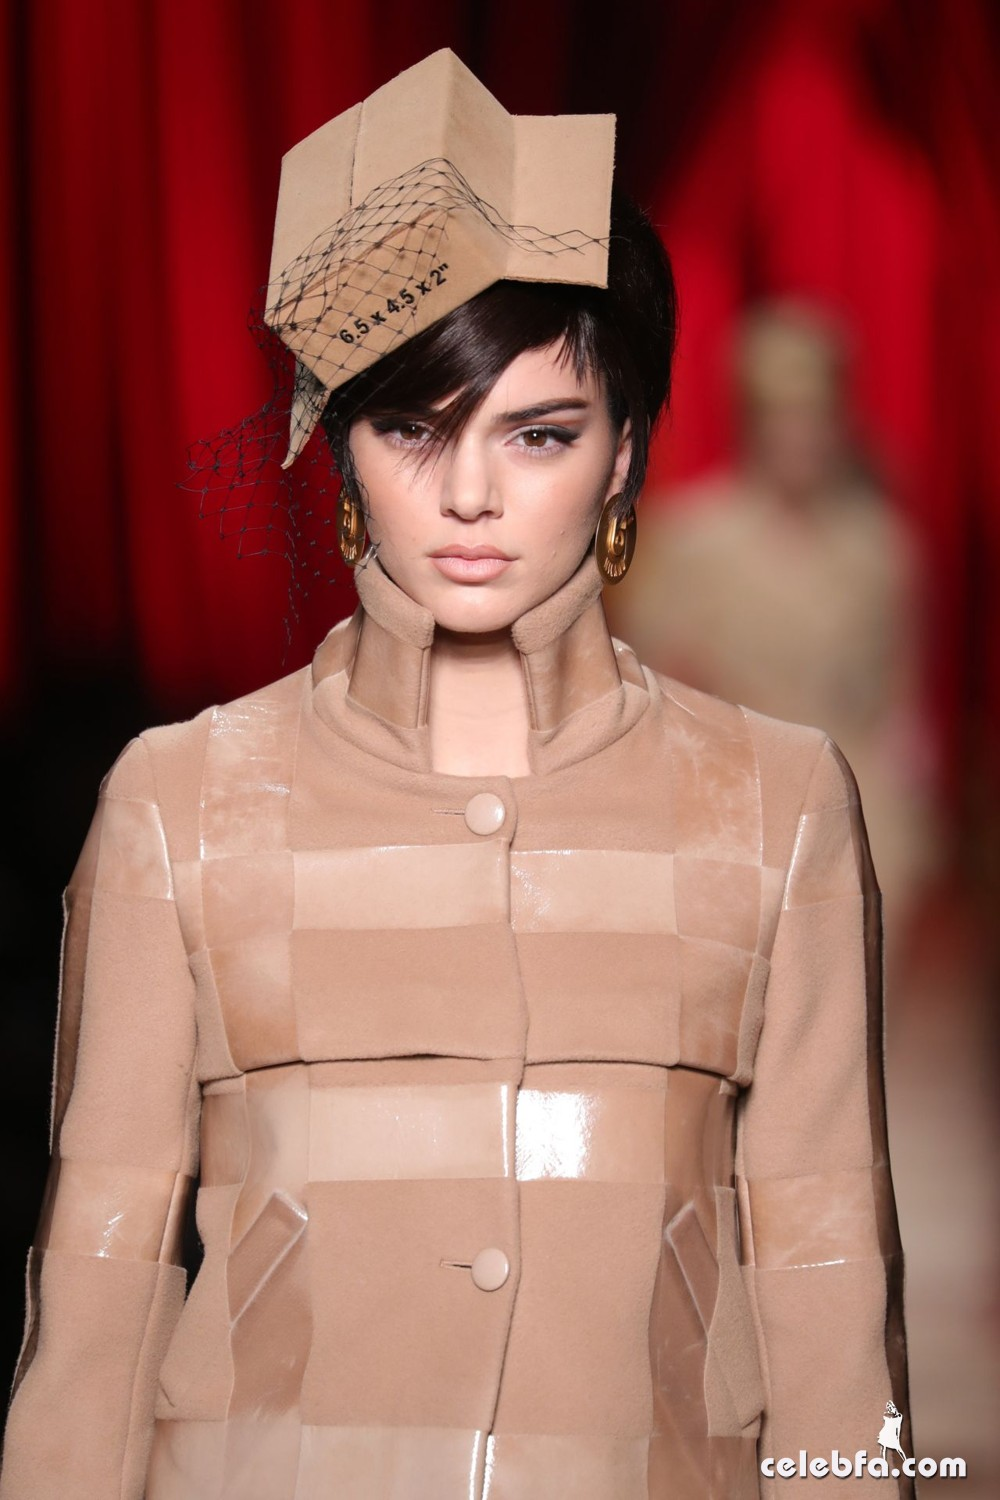 kendall-jenner-hit-the-catwalk-for-moschino-milan-fashion-week-1